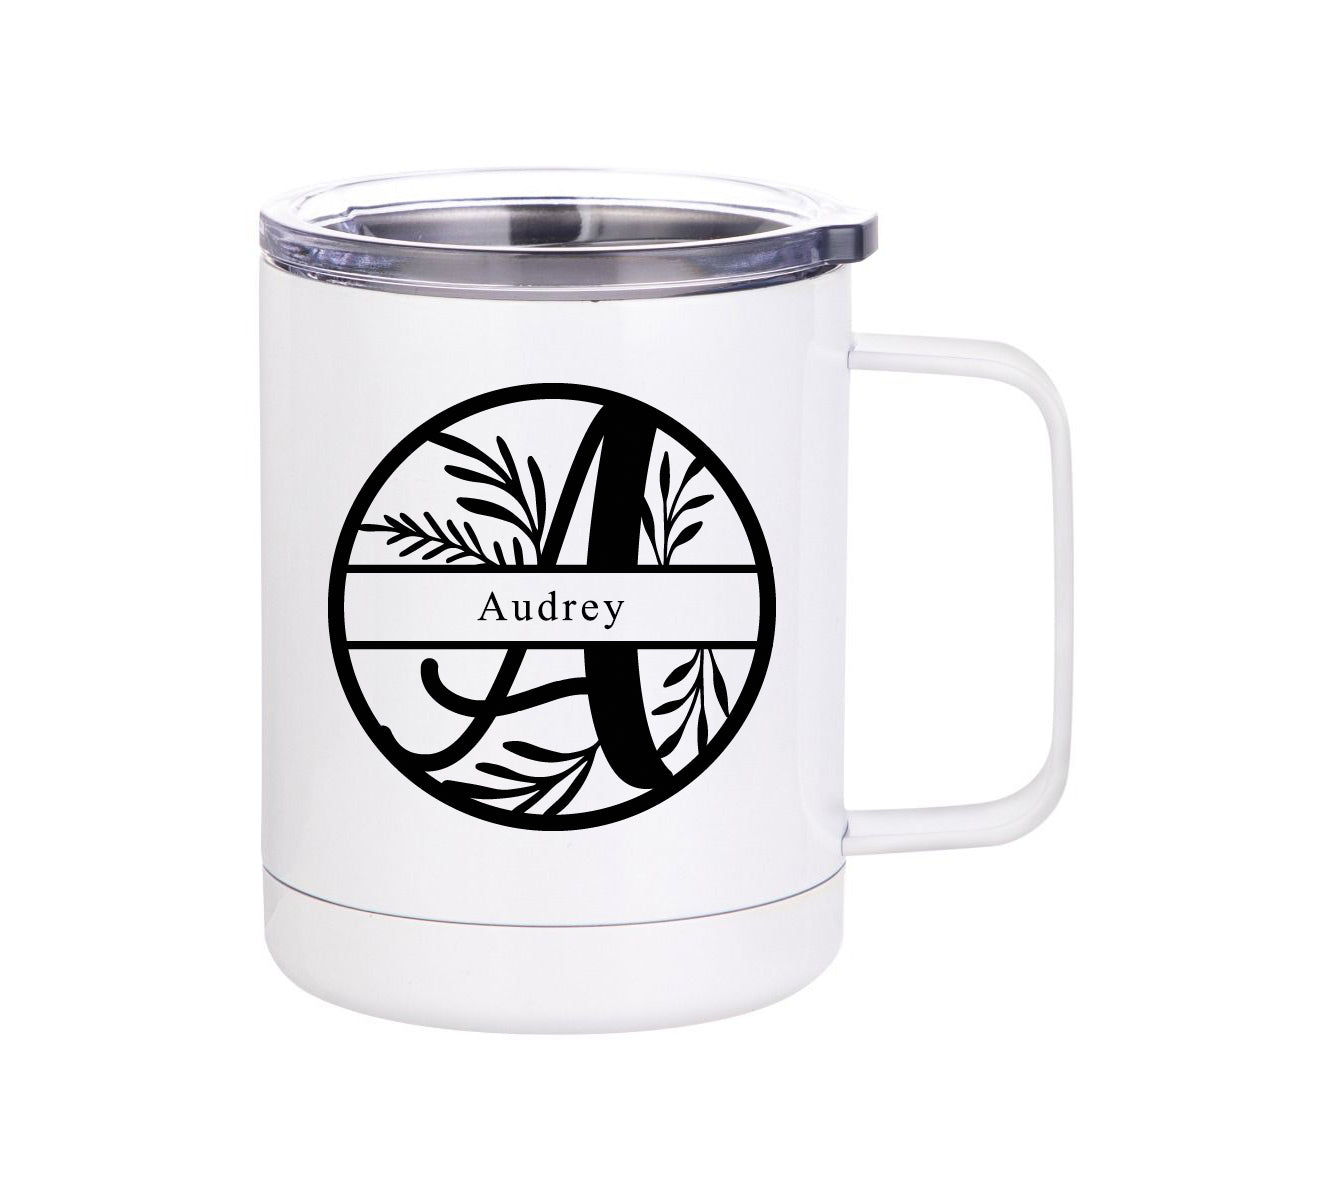 Floral monogram insulated mug